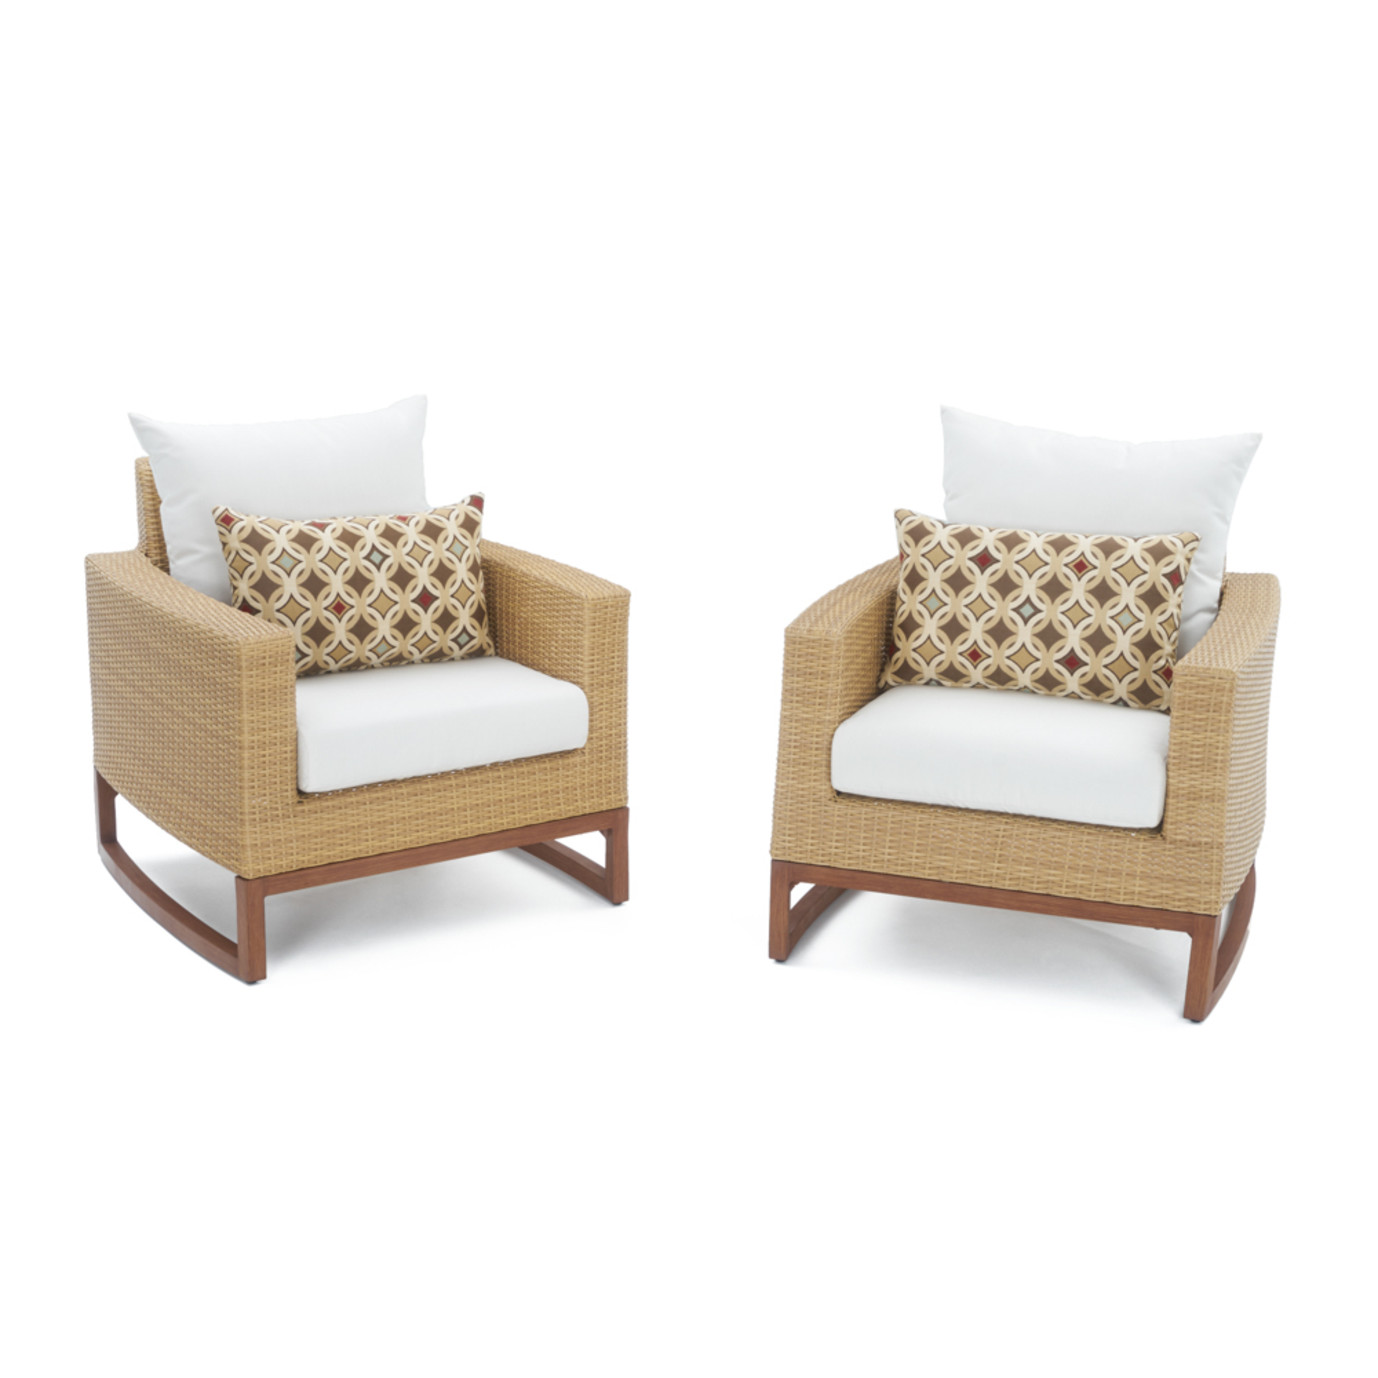 Mili™ 4 Piece Seating Set - Moroccan Cream